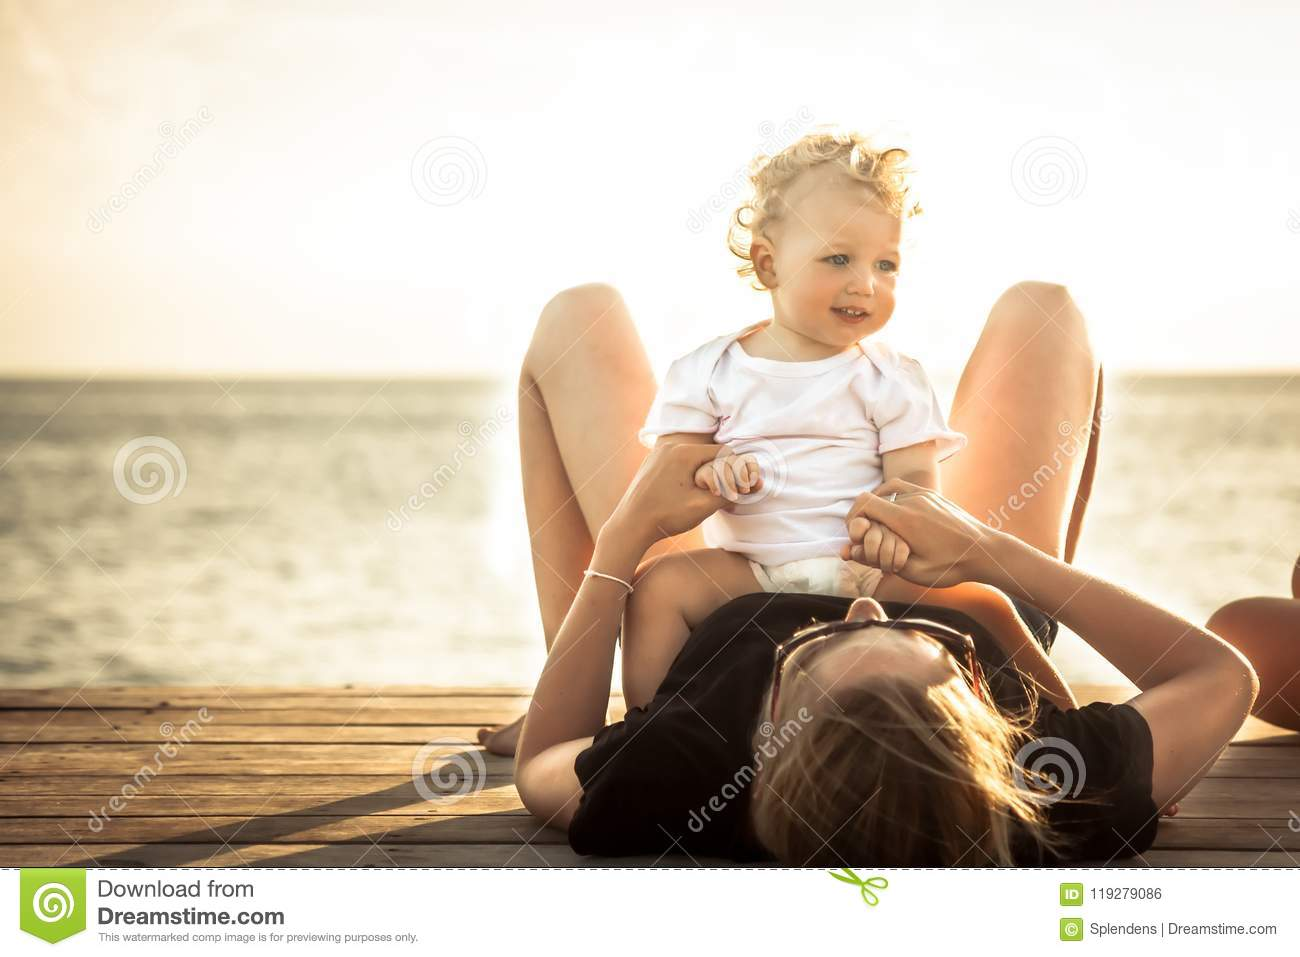 Child baby mother relaxing together beach during summer beach holidays sunlight